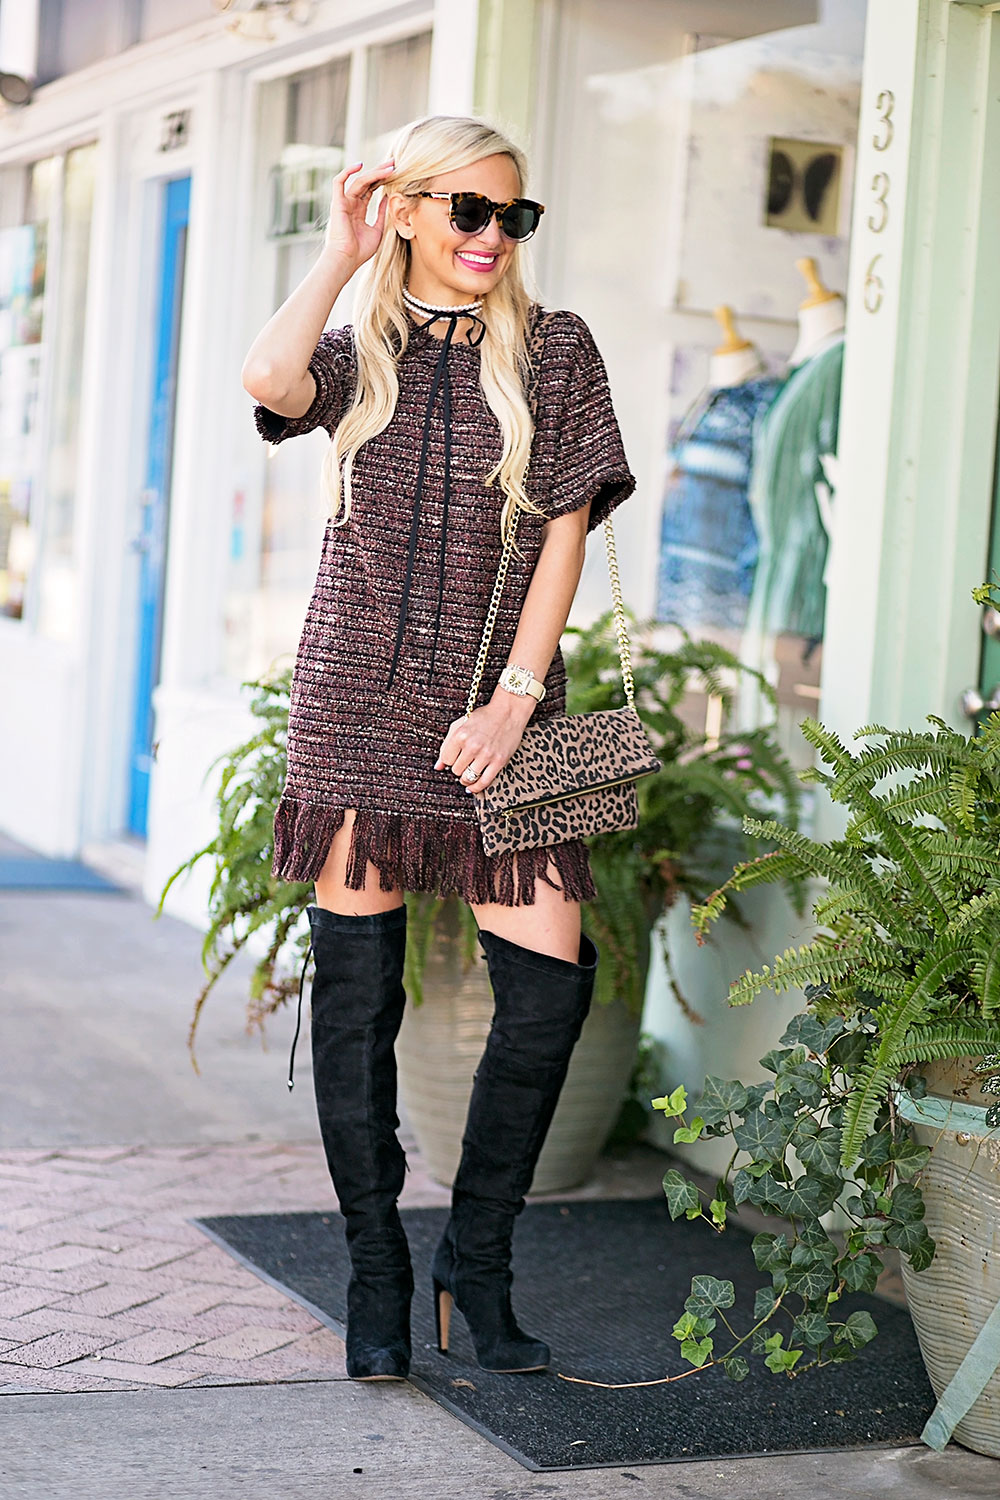 vandi-fair-blog-lauren-vandiver-dallas-texas-southern-fashion-blogger-astr-margo-fringe-shift-hem-dress-wine-over-the-knee-black-boots-2